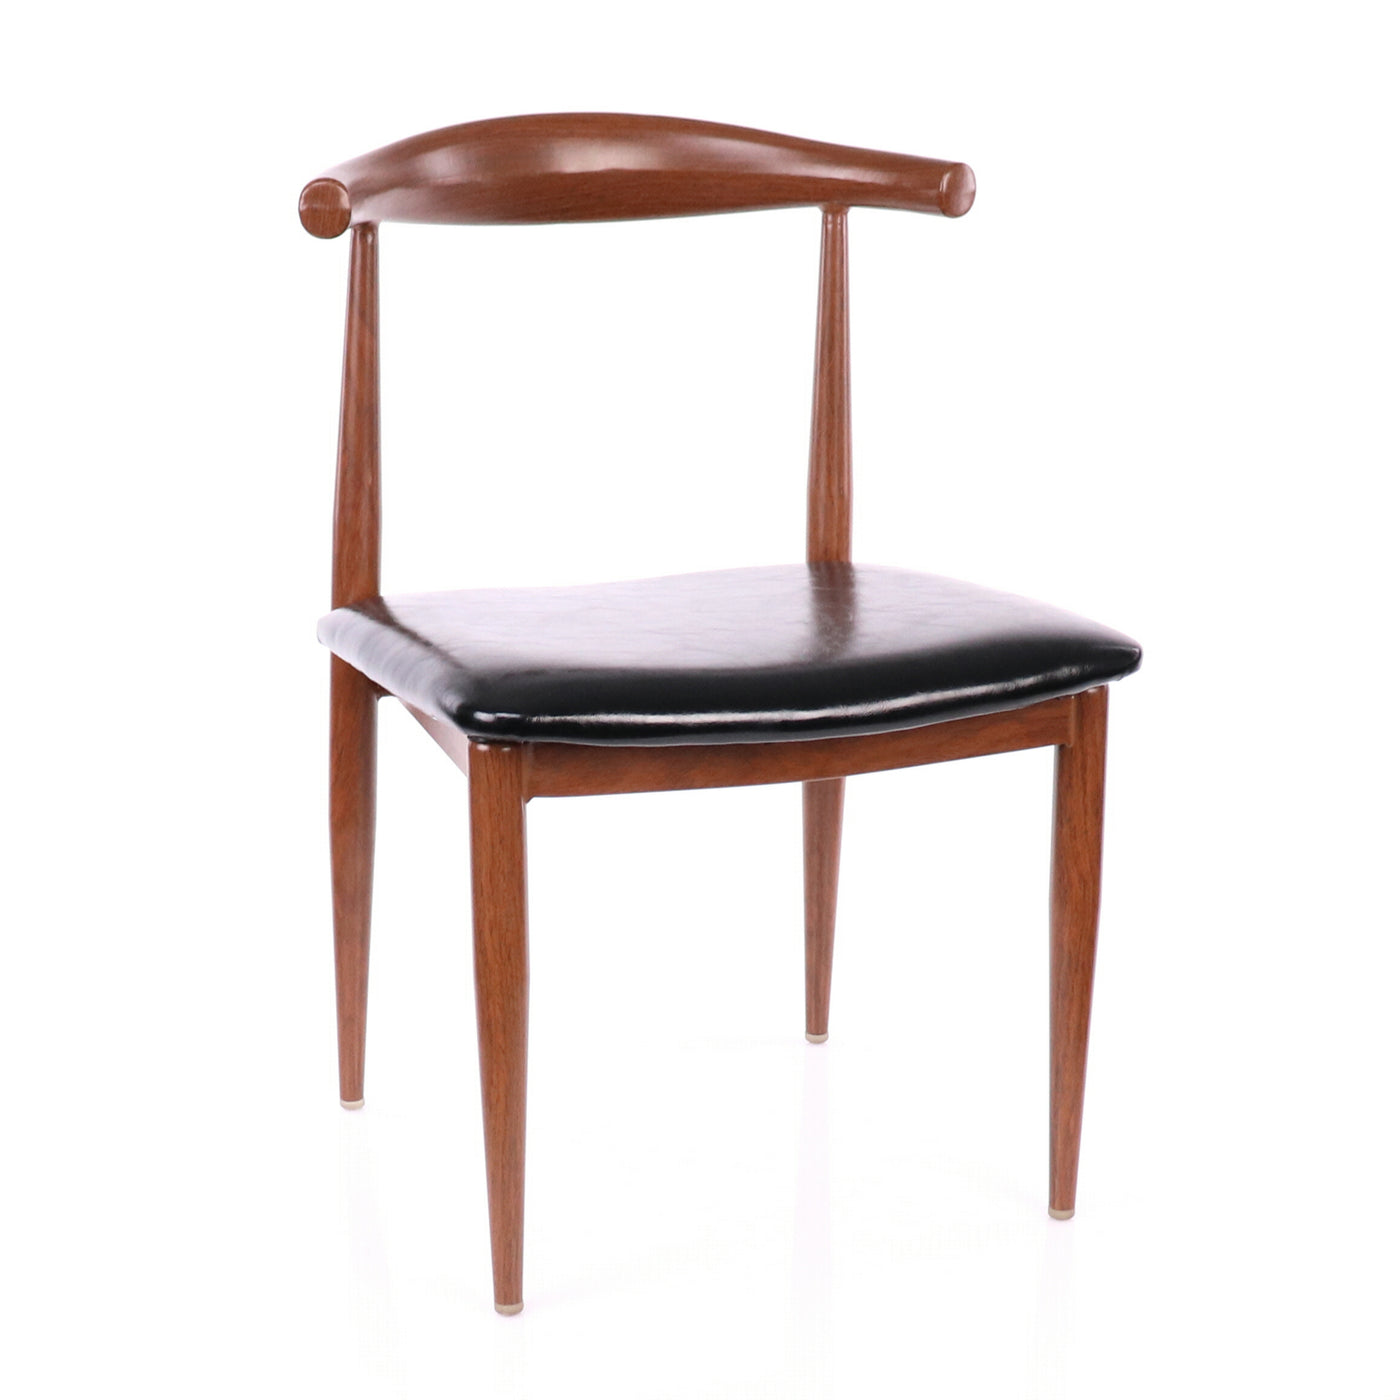 Design Lab MN LS-1013-WALBLK Elbow Walnut Black Dining Chair Set of 2